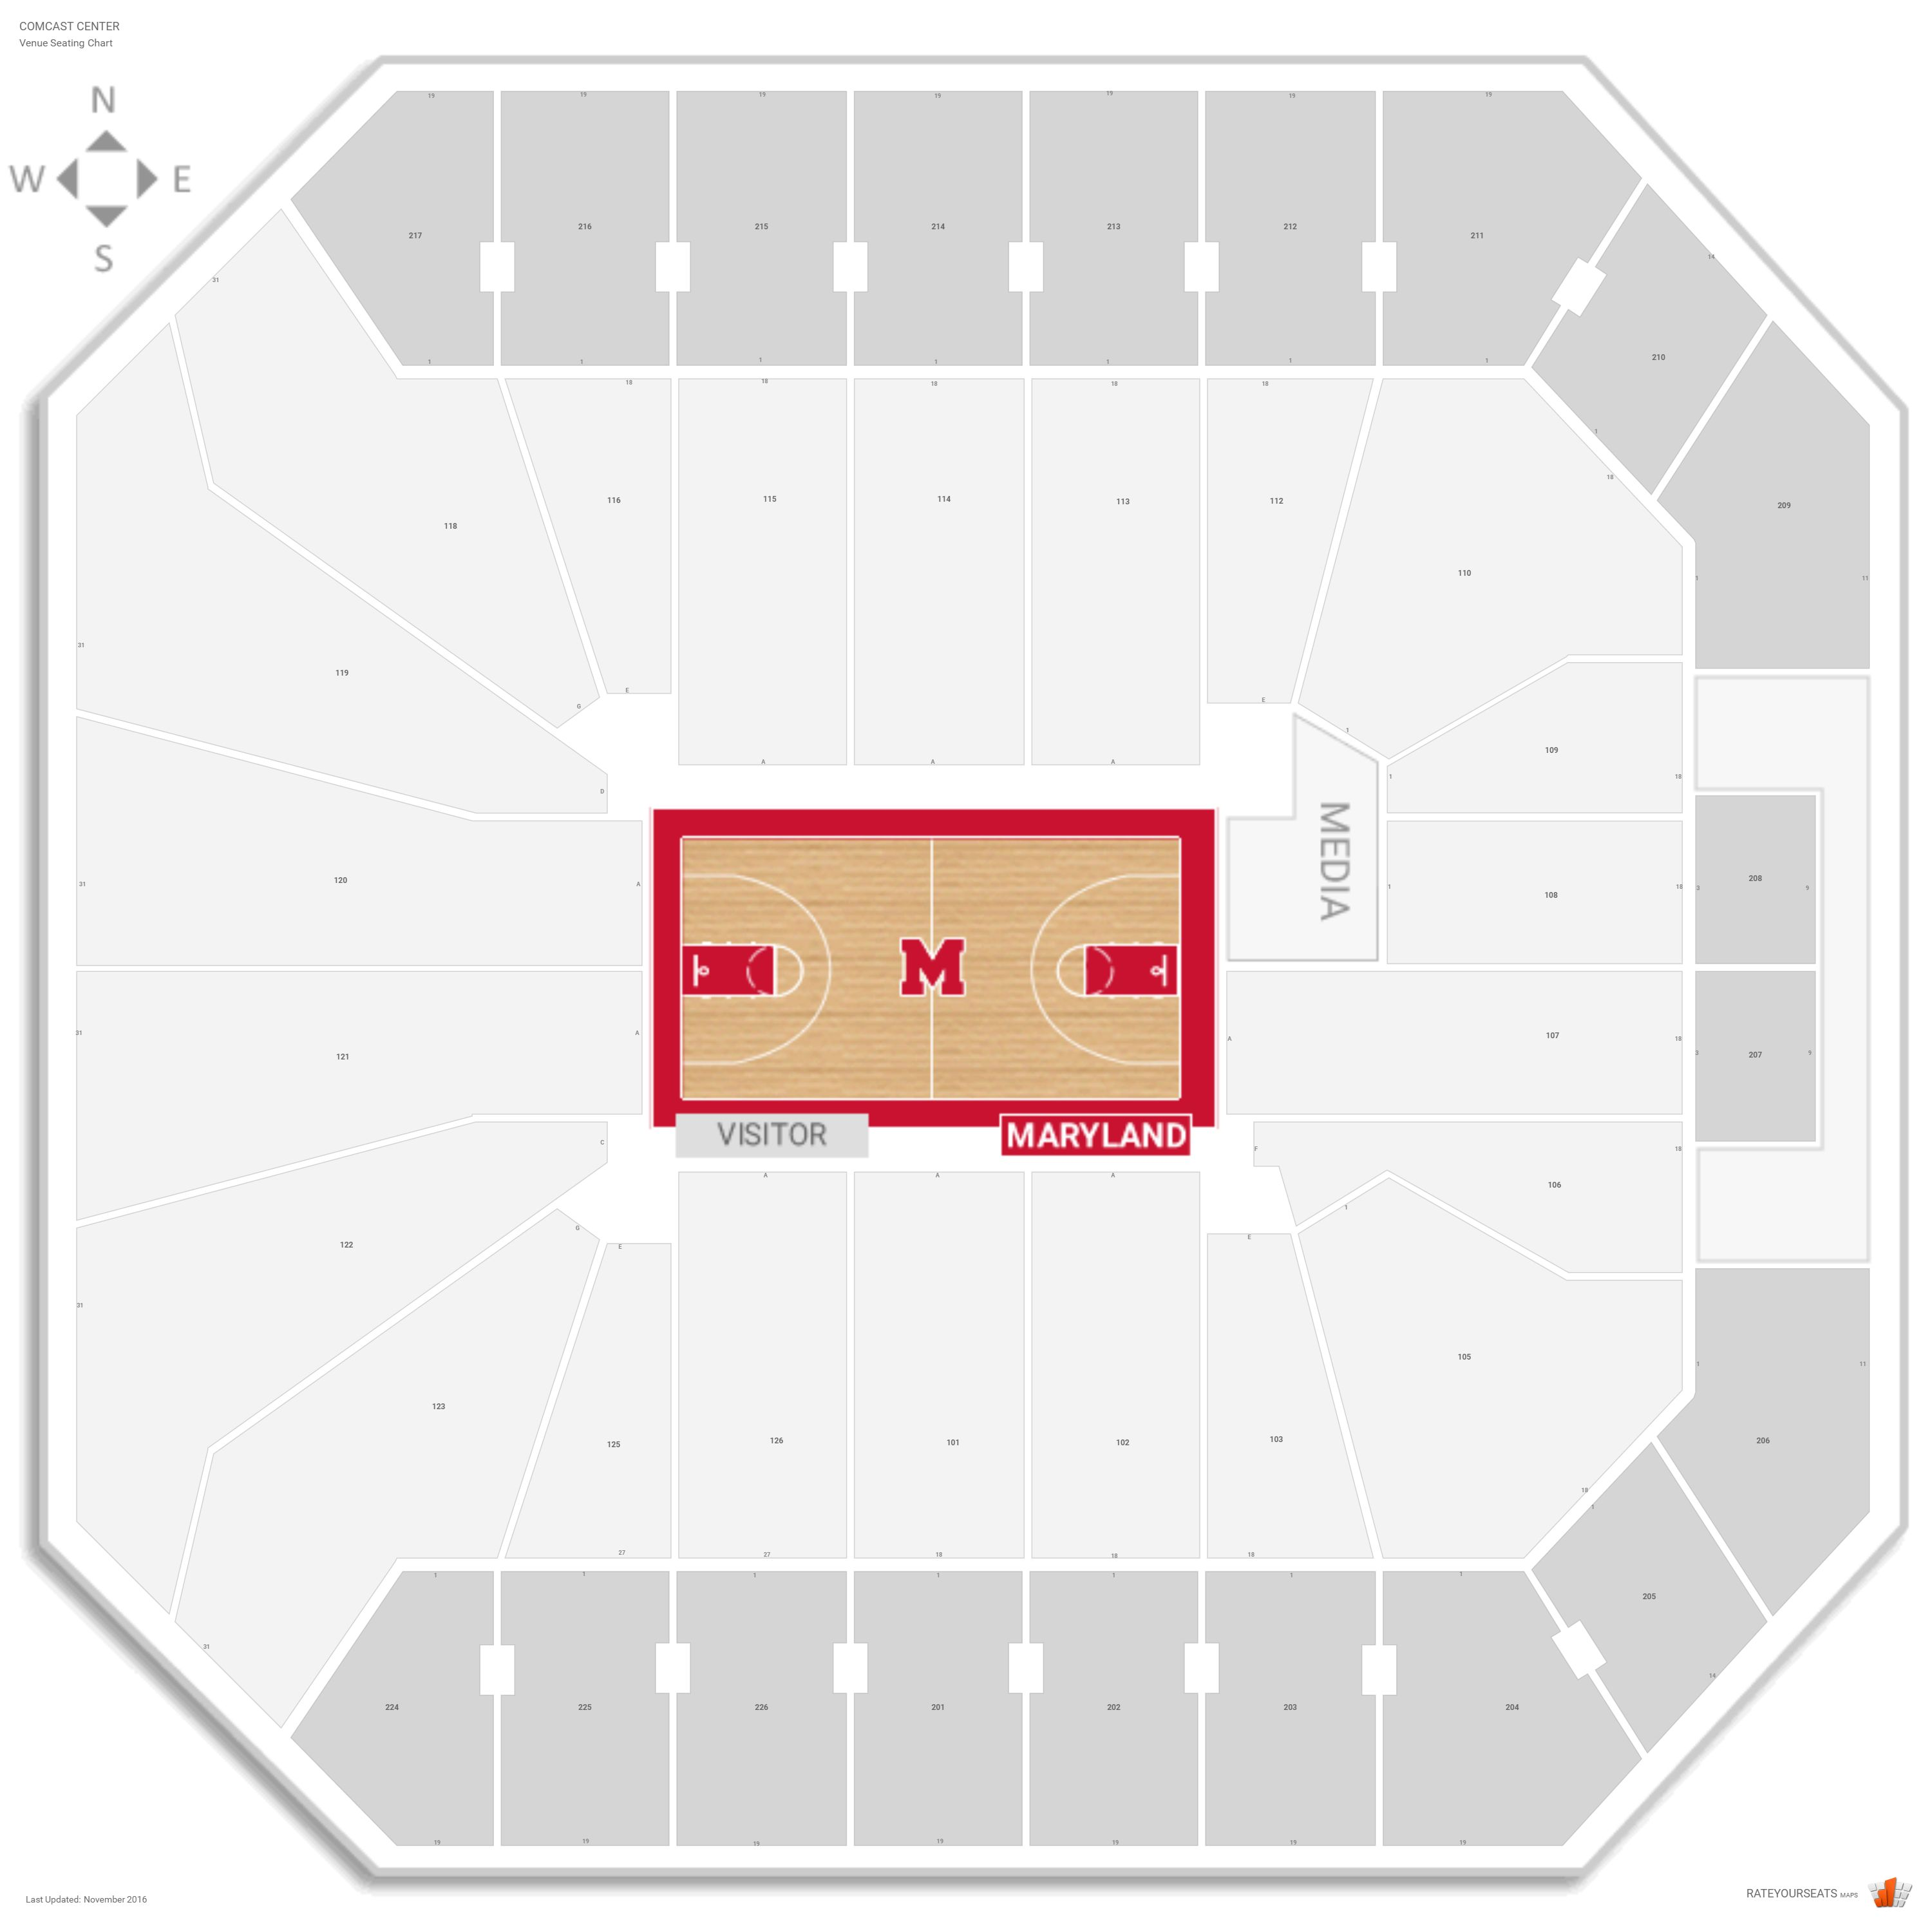 Comcast Center Seating Chart With Row Numbers